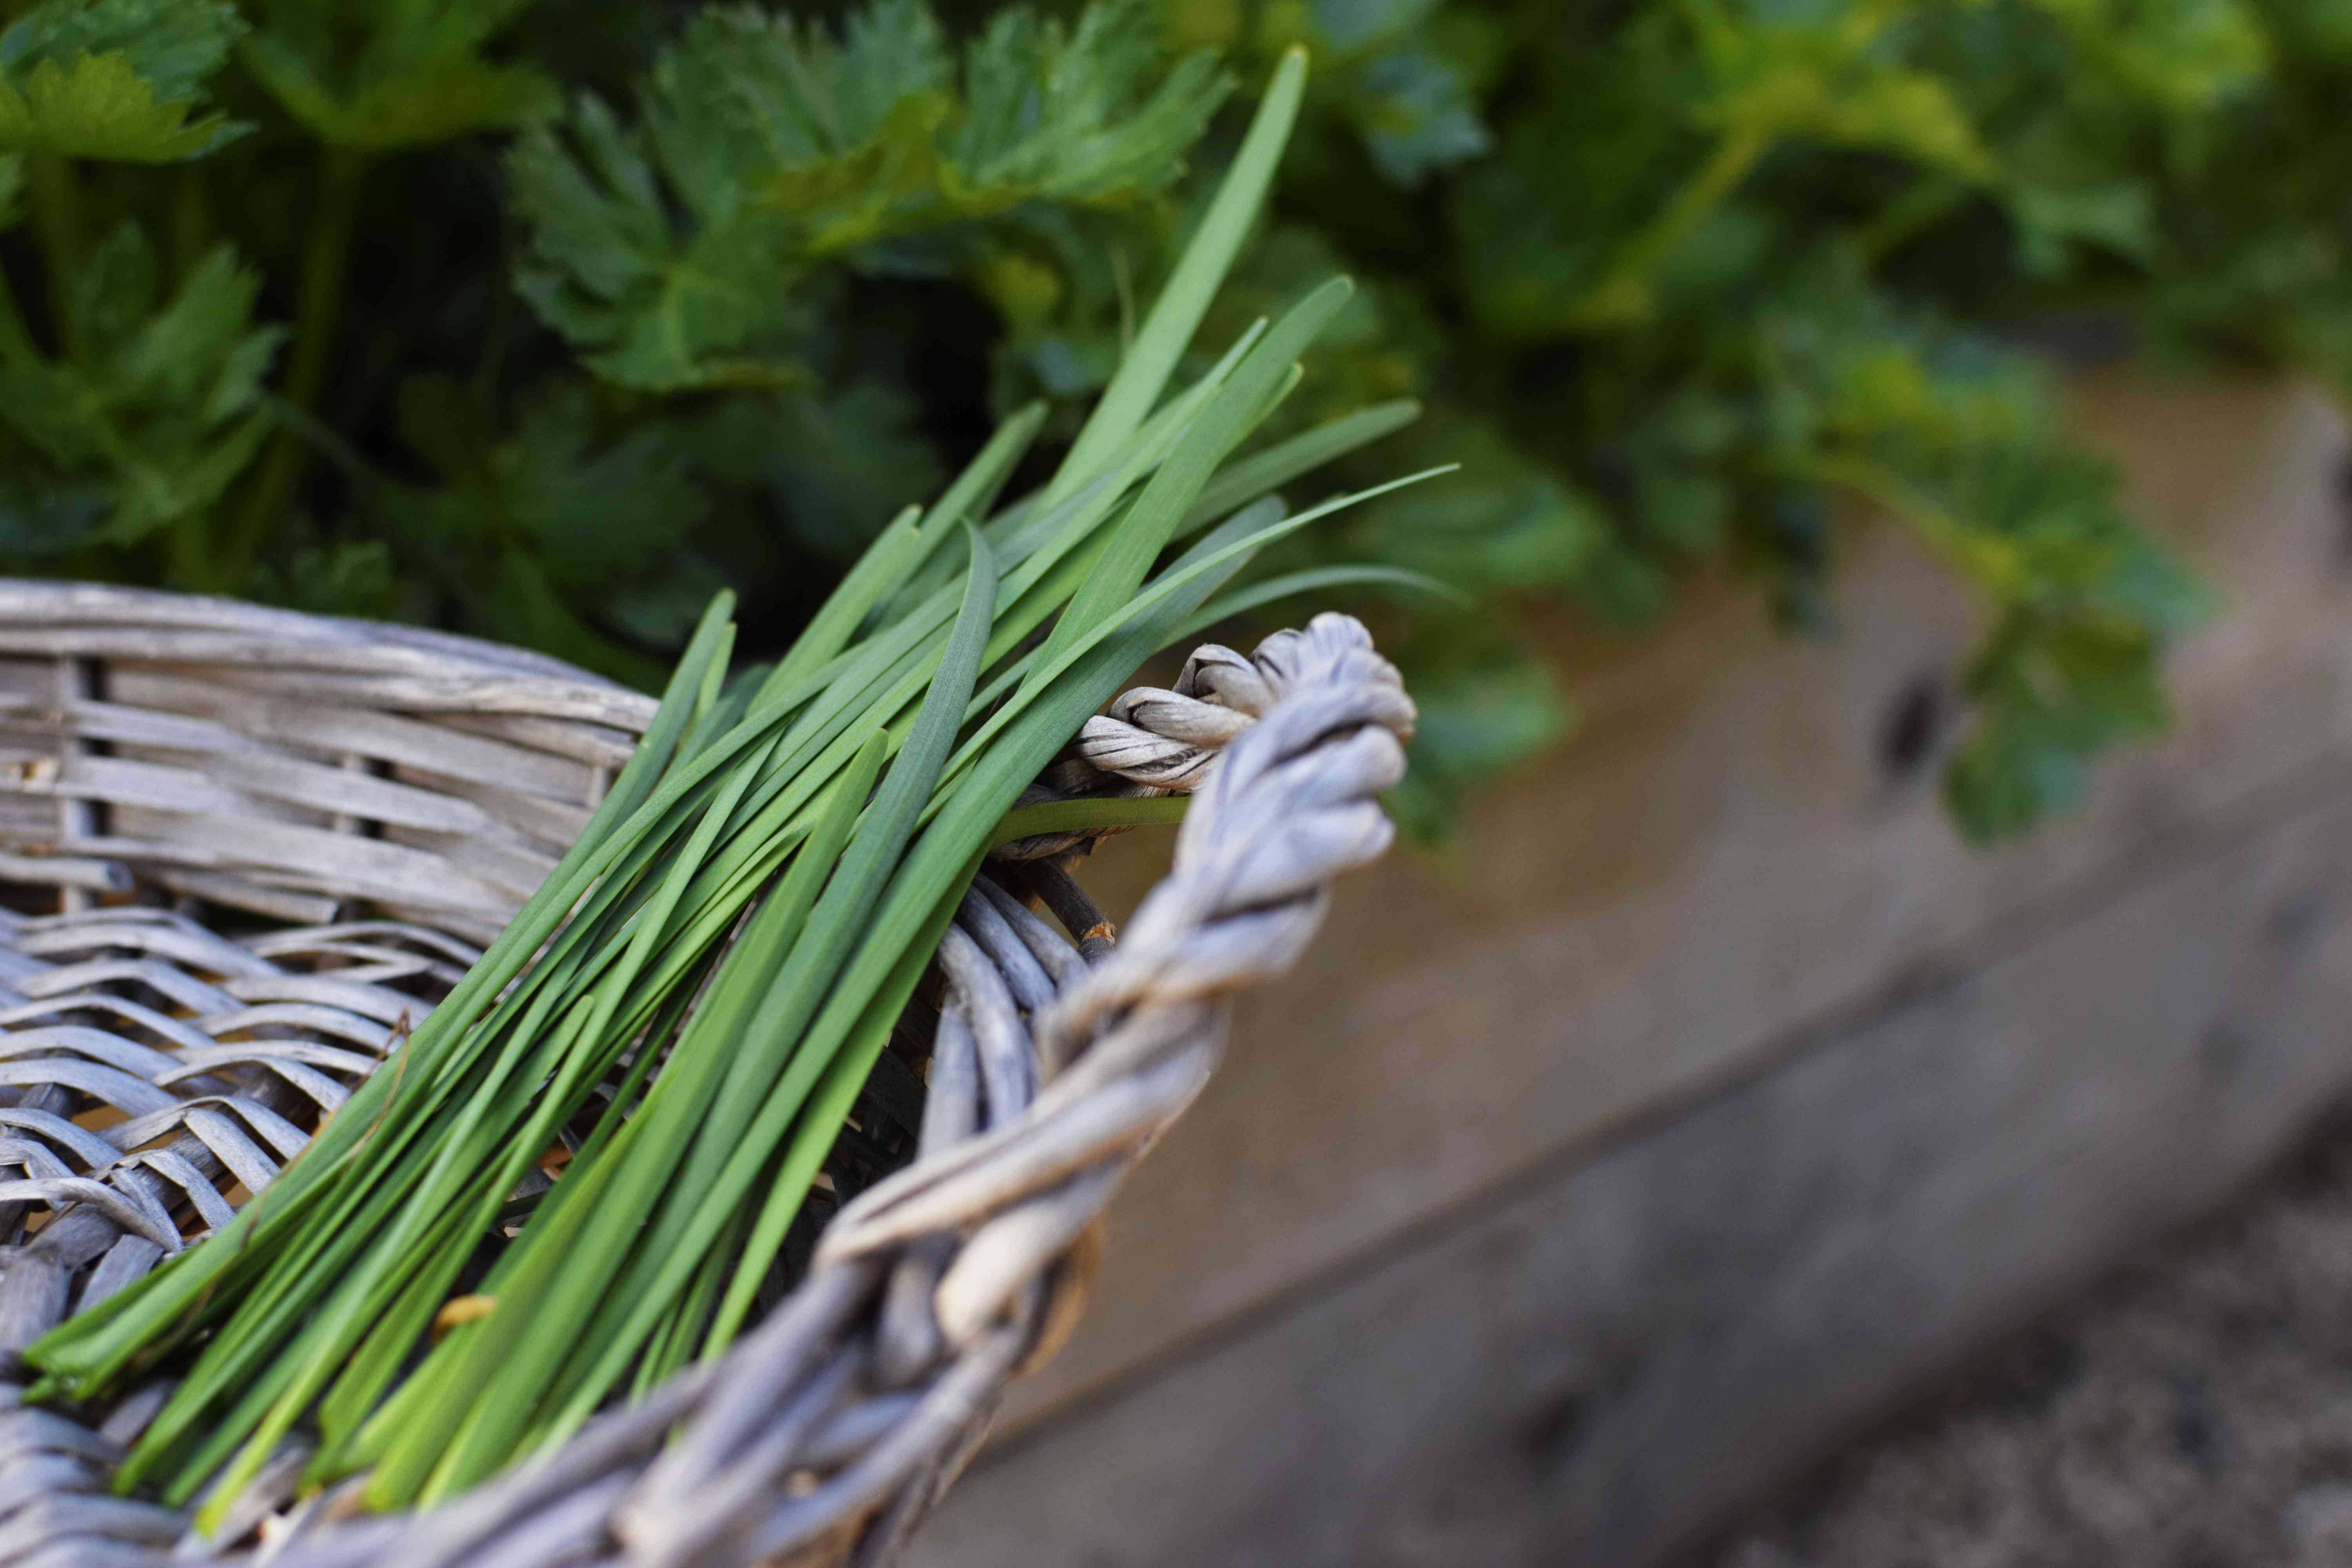 Harvested chives in small woven basket next to garden plants closeup